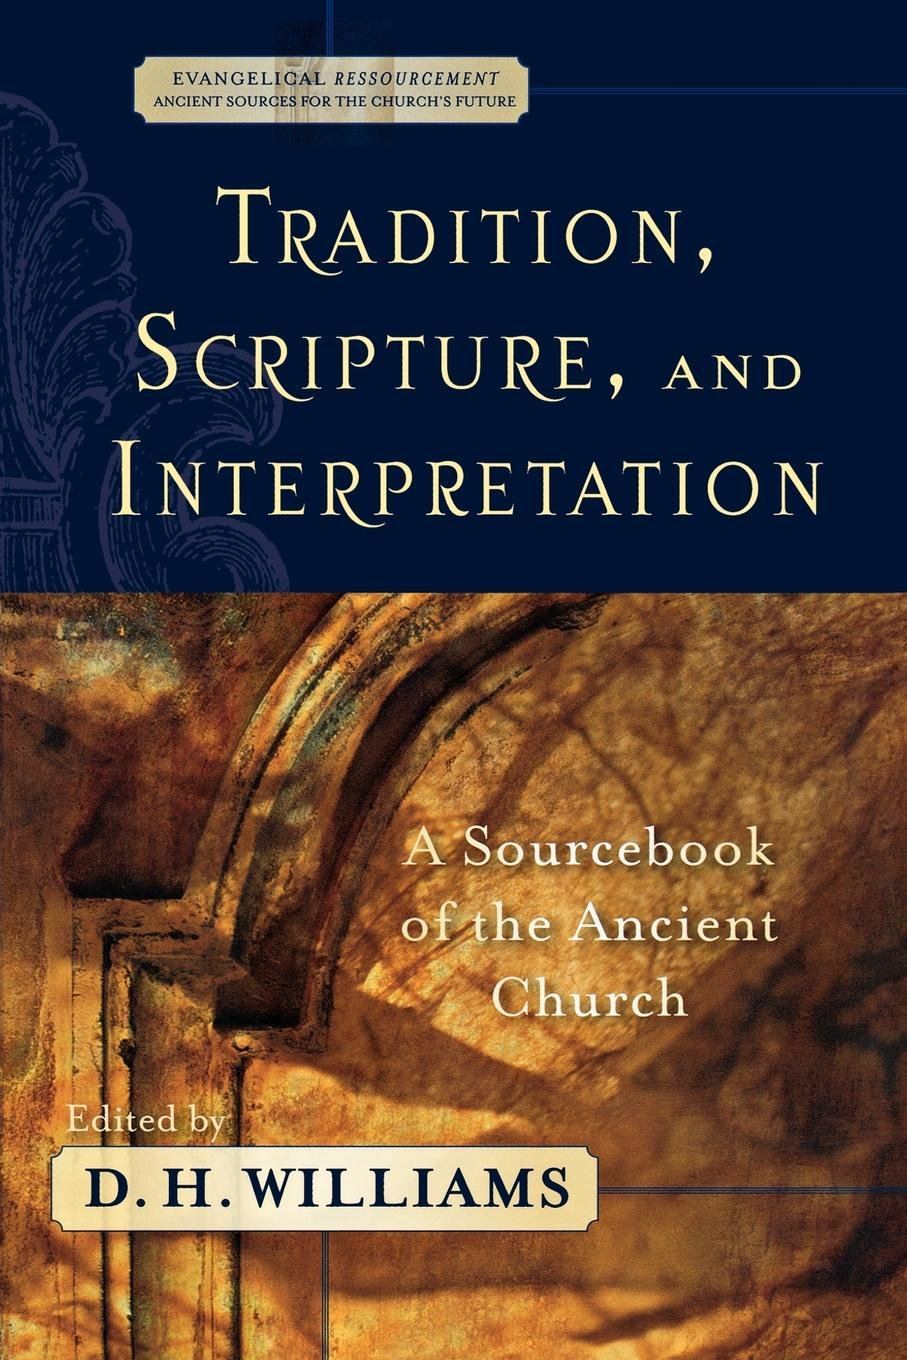 Tradition, Scripture, and Interpretation: A Sourcebook of the Ancient Church (Evangelical Ressourcement: Ancient Sources for the Church's Future) pdf epub